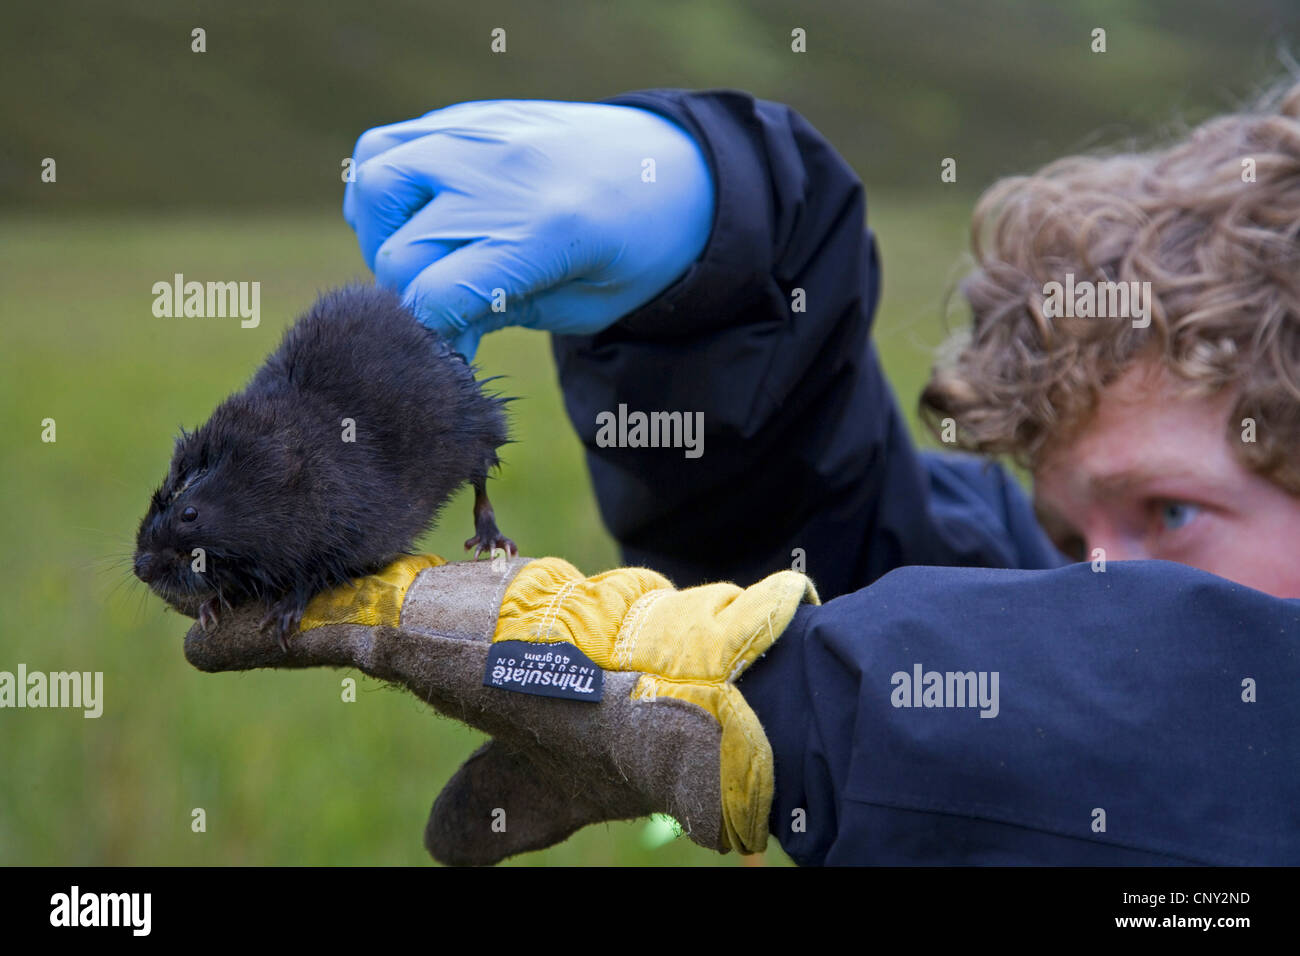 European water vole, northern water vole (Arvicola terrestris), researcher examines an upland water vole for gender - Stock Image